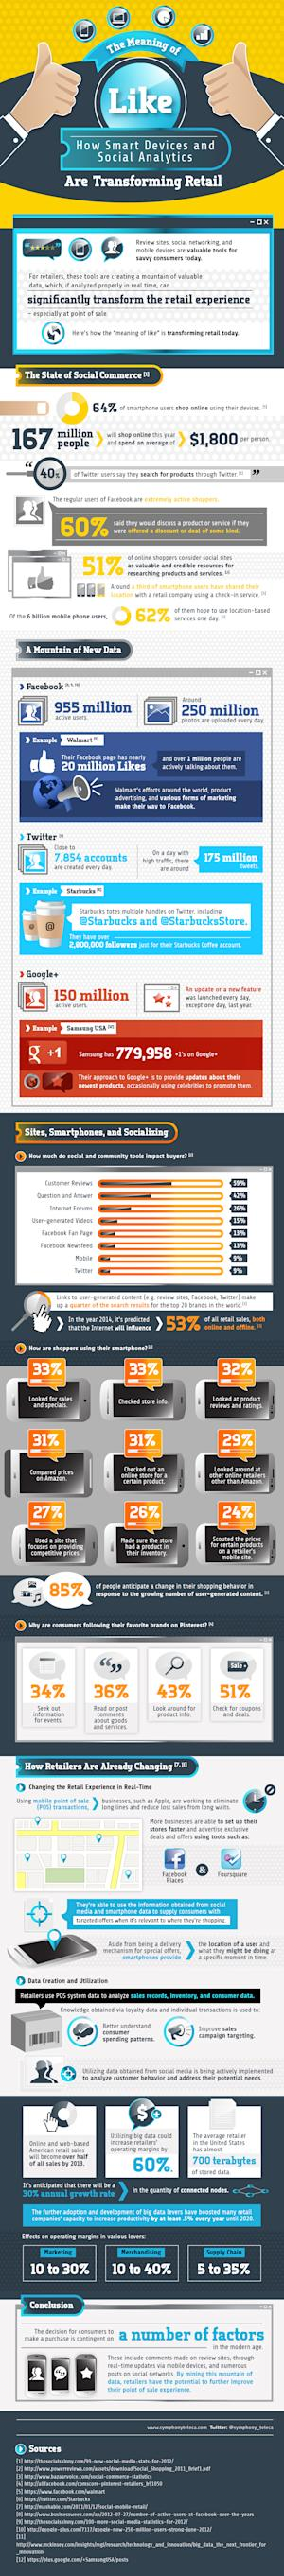 How Smart Devices and Social Media Impact Your Shopping Habits [INFOGRAPHIC]